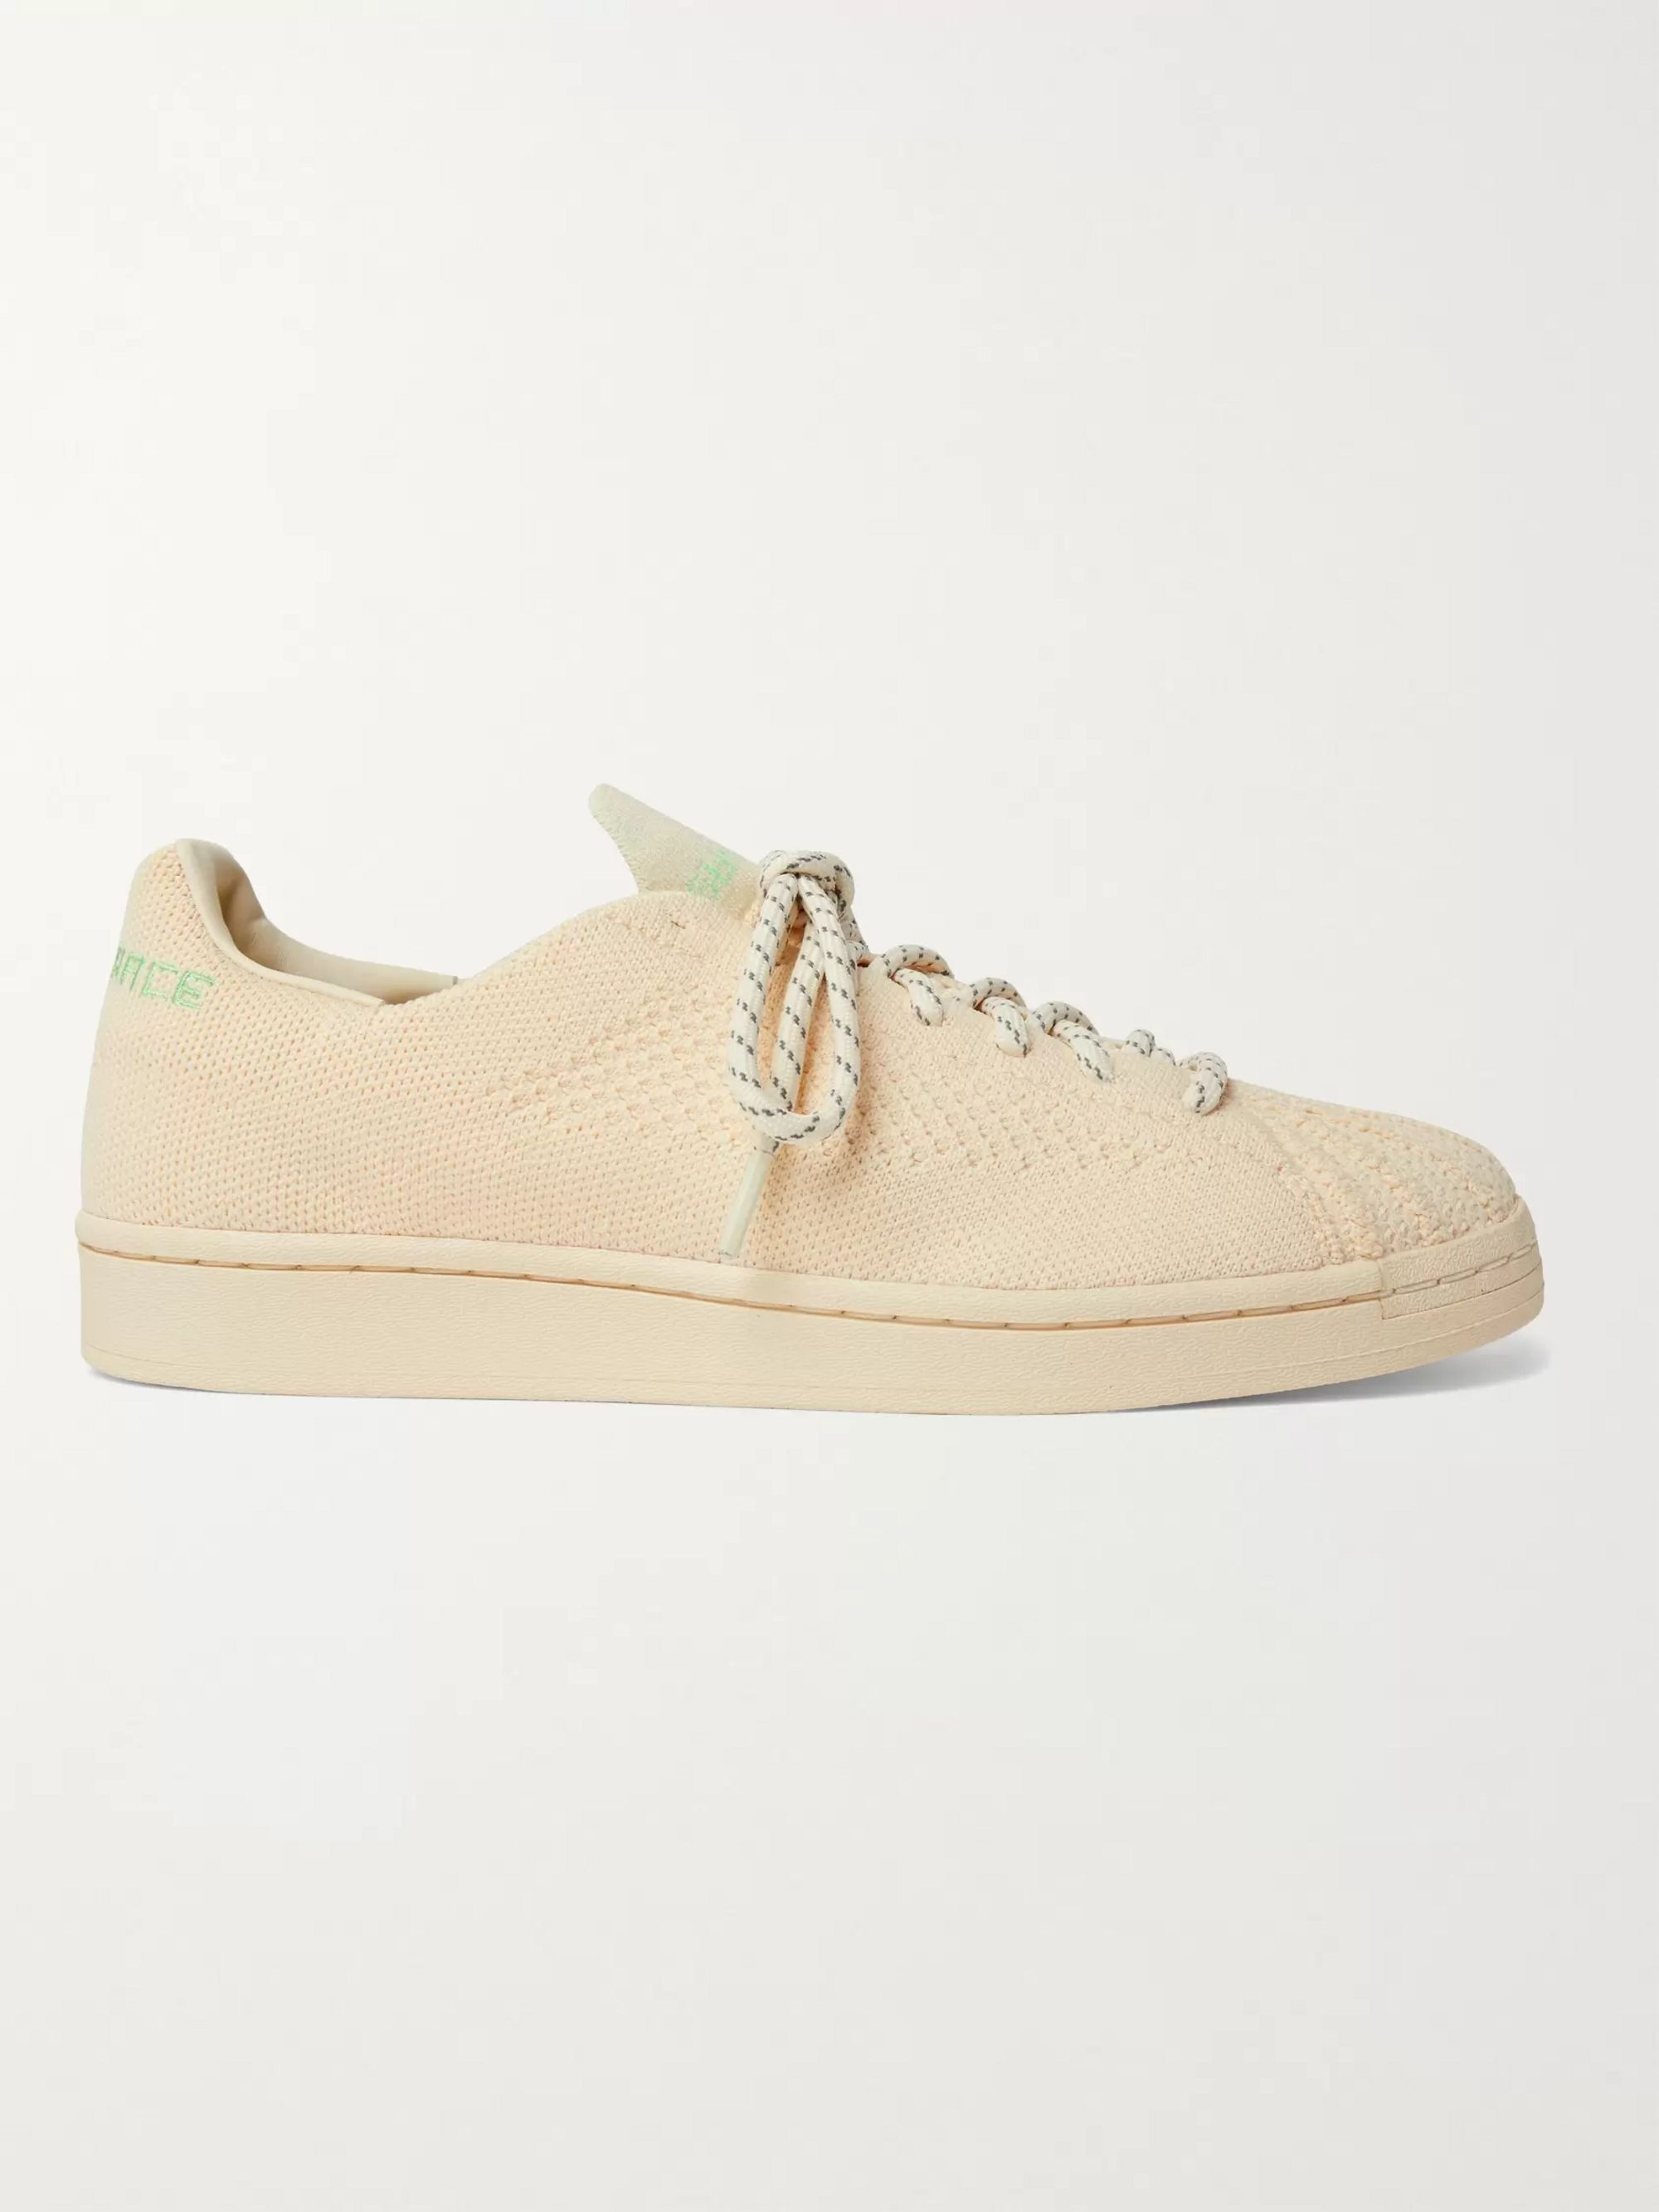 Pharrell Williams Superstar Embroidered Primeknit Sneakers